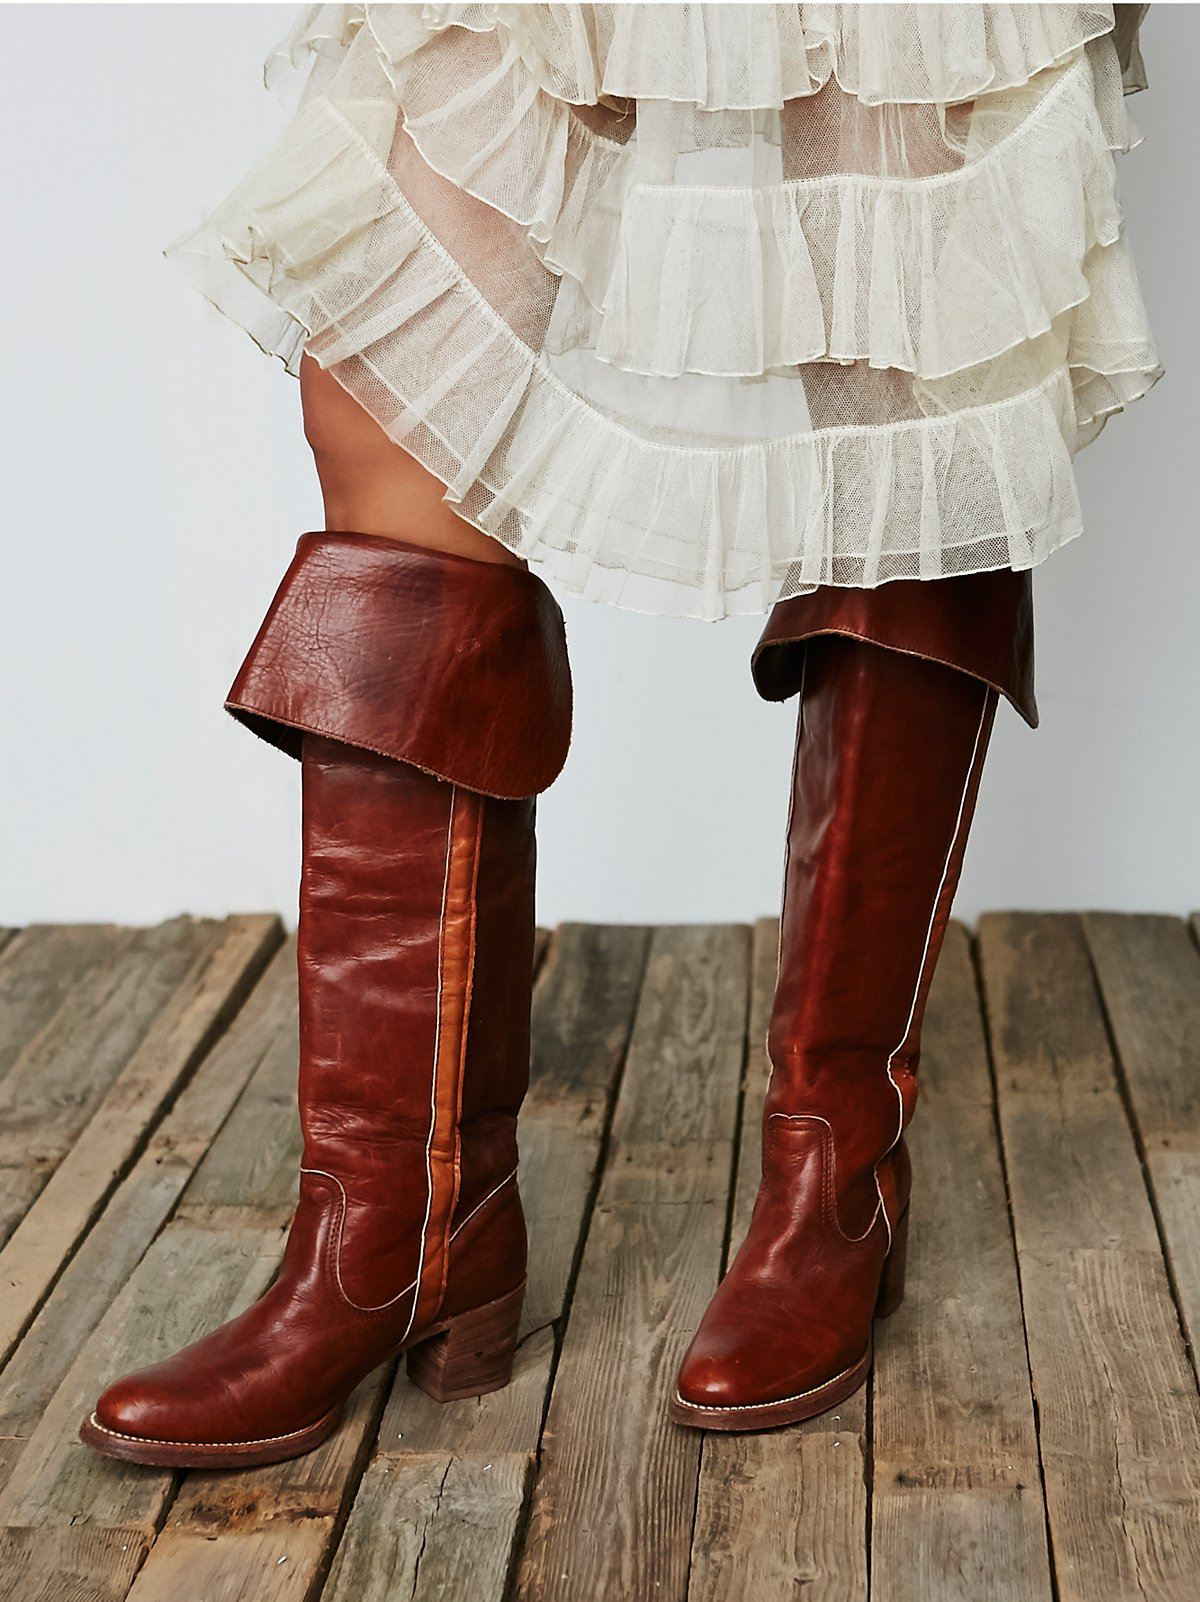 Vintage '70s Frye Tall Boots